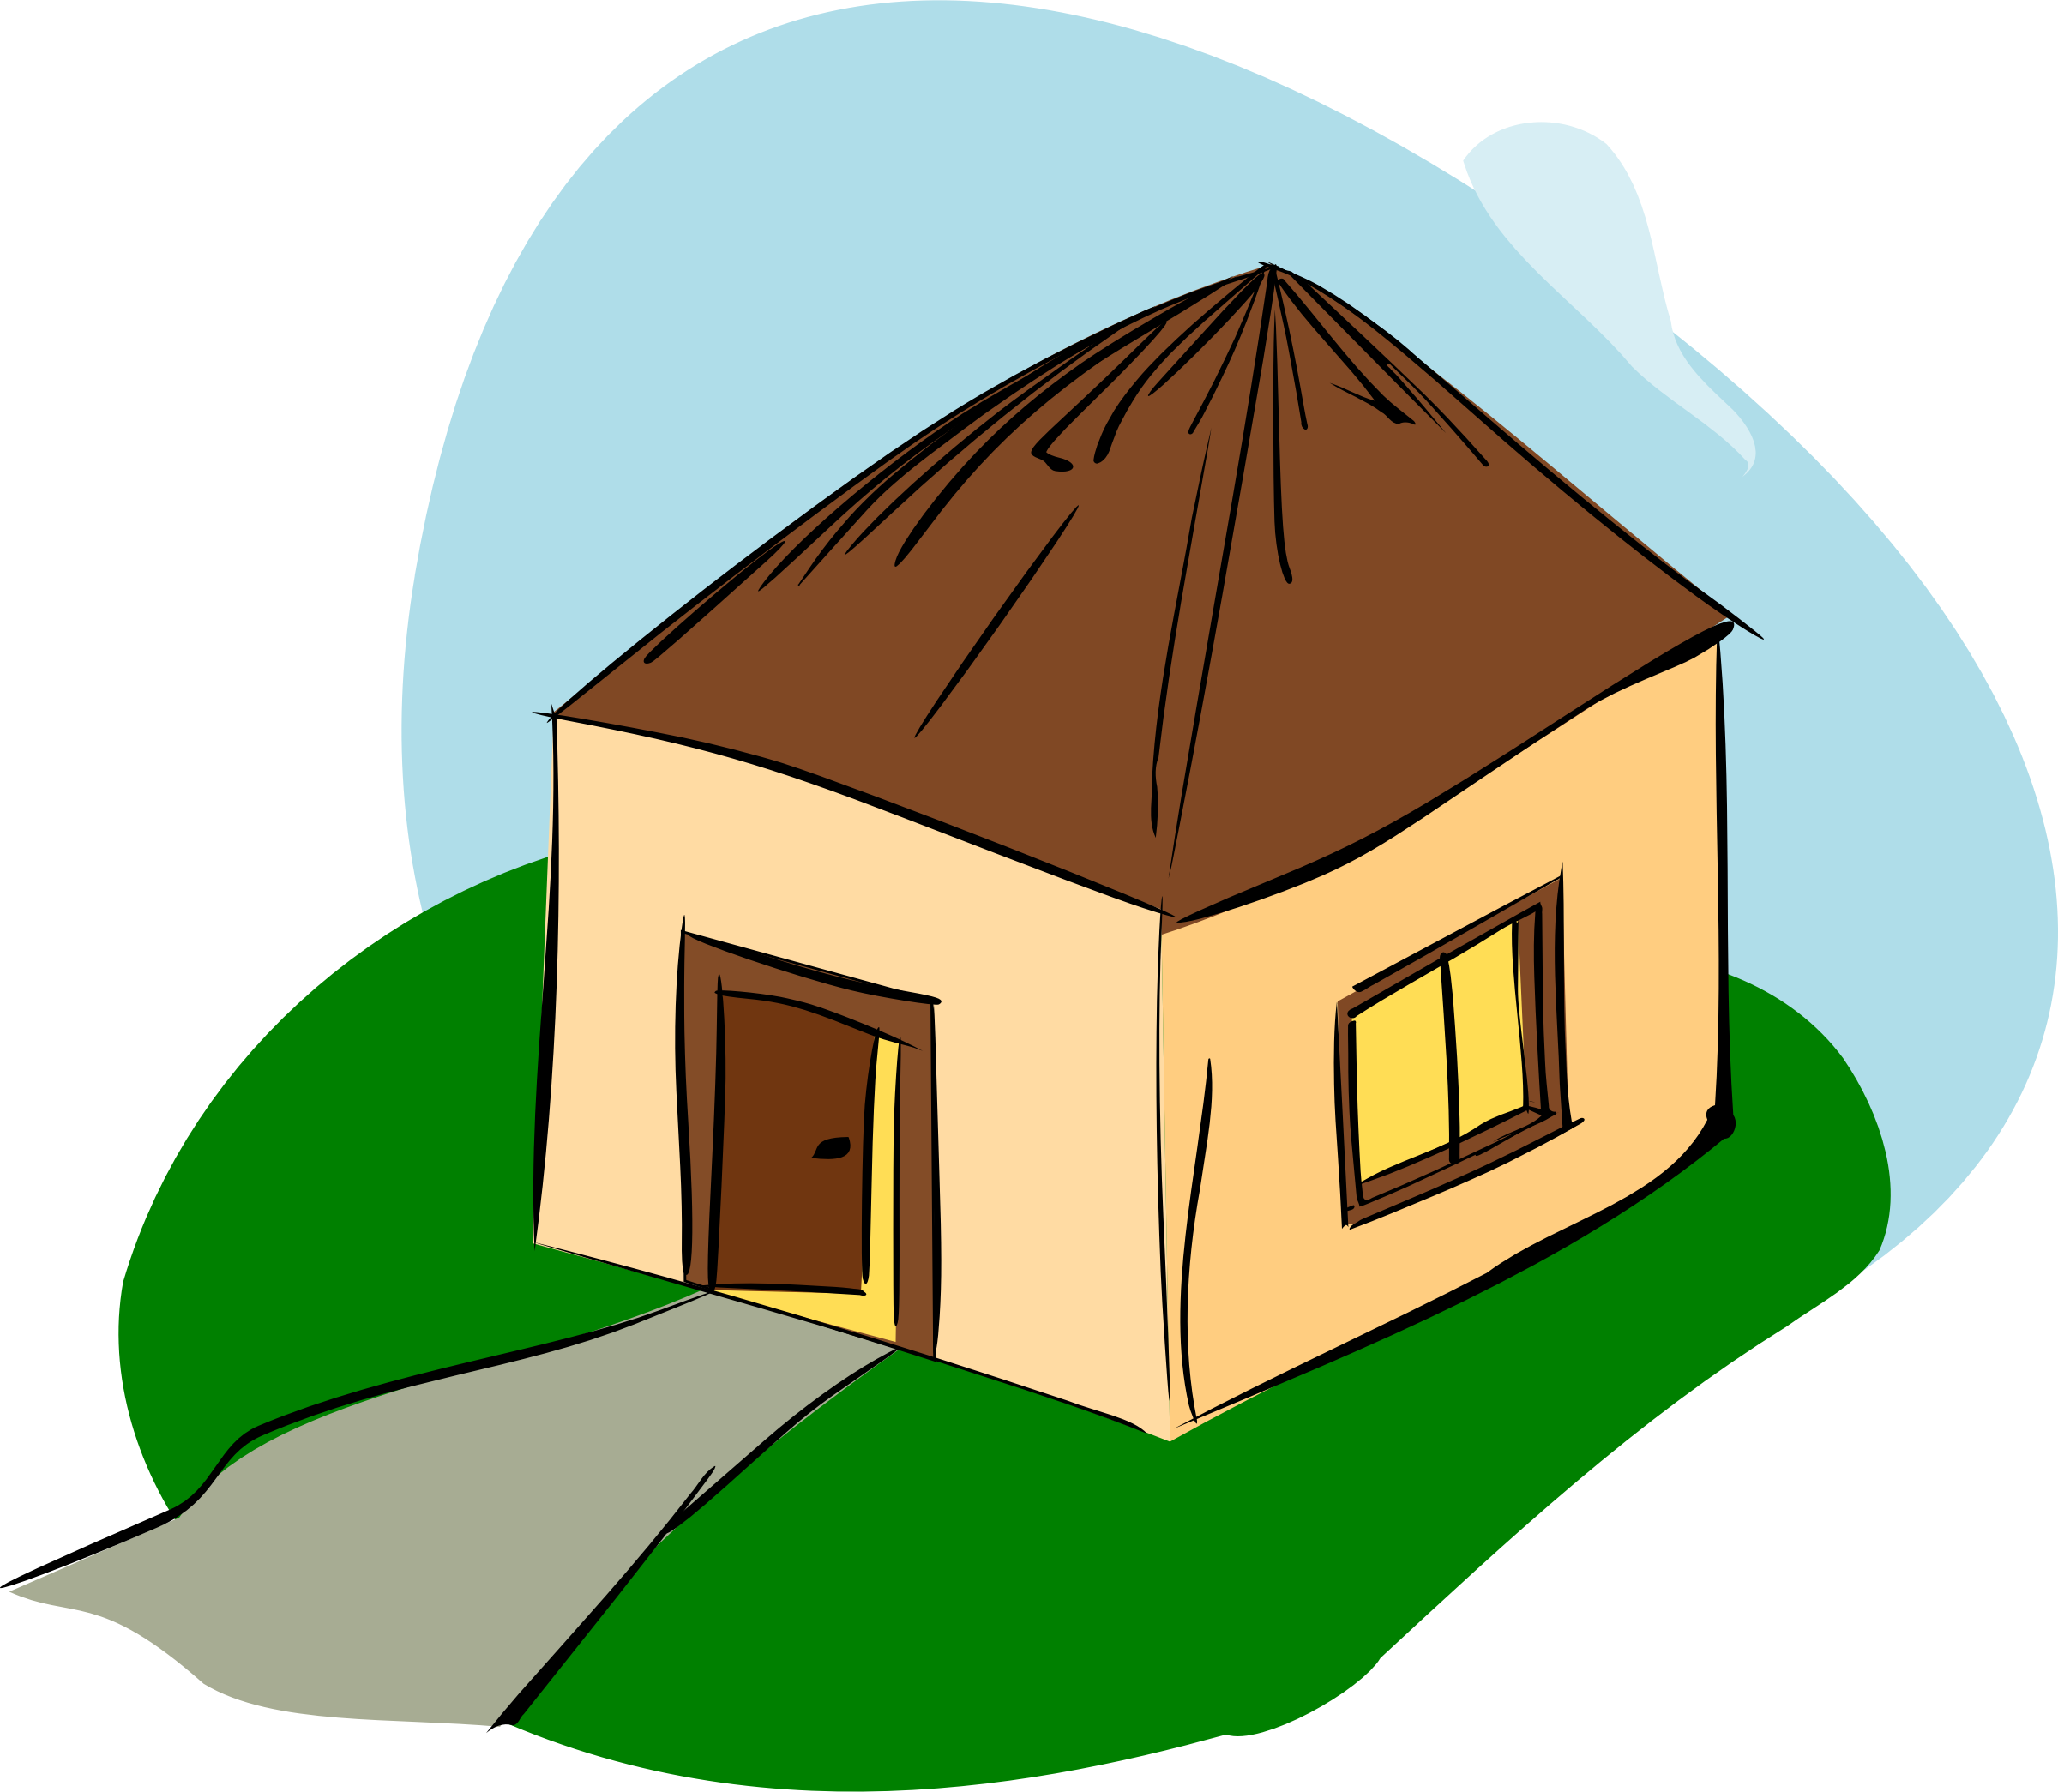 Stylized house clipart graphic royalty free Shack Clipart Country House Free collection   Download and share ... graphic royalty free